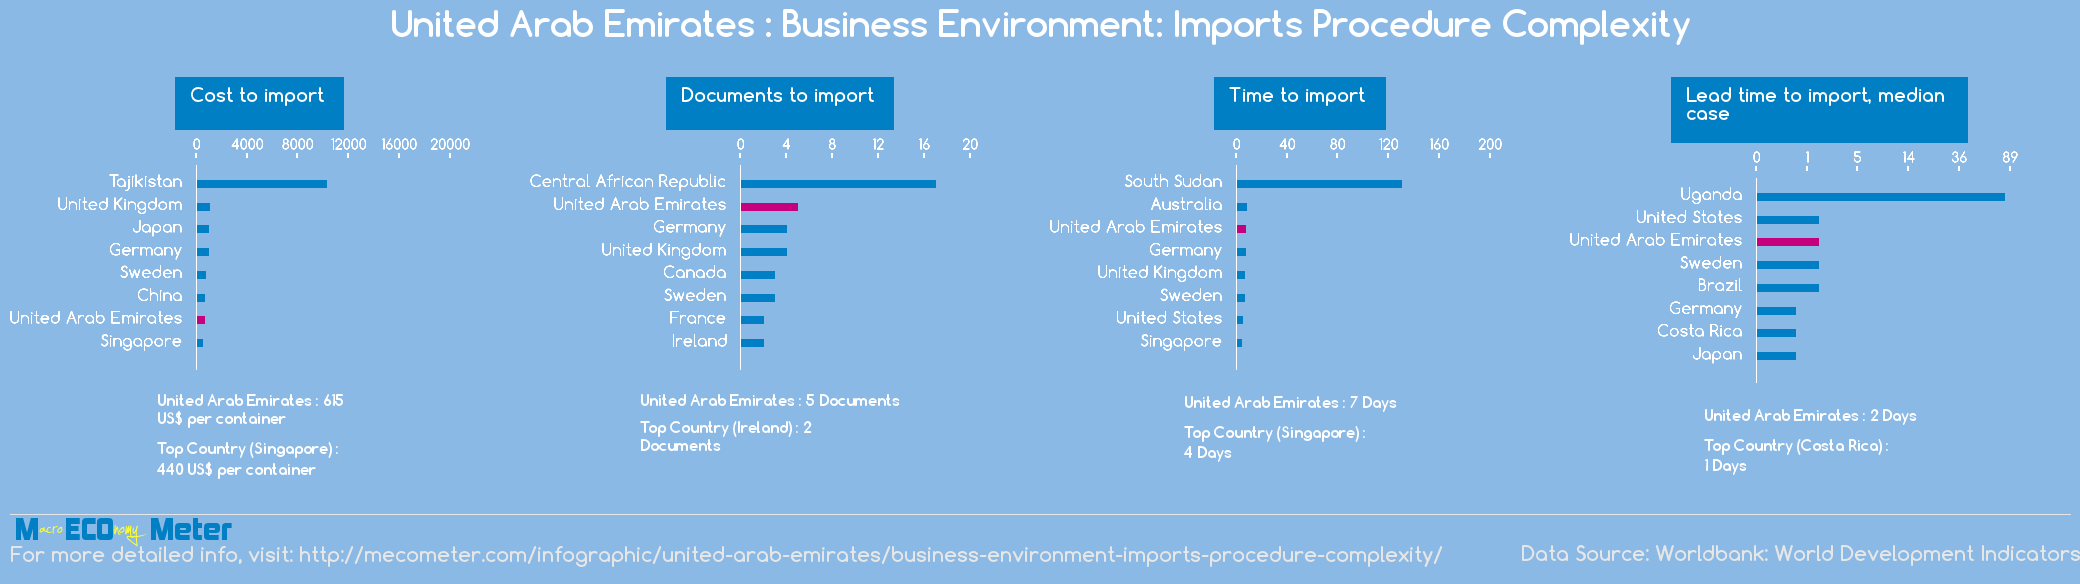 United Arab Emirates : Business Environment: Imports Procedure Complexity